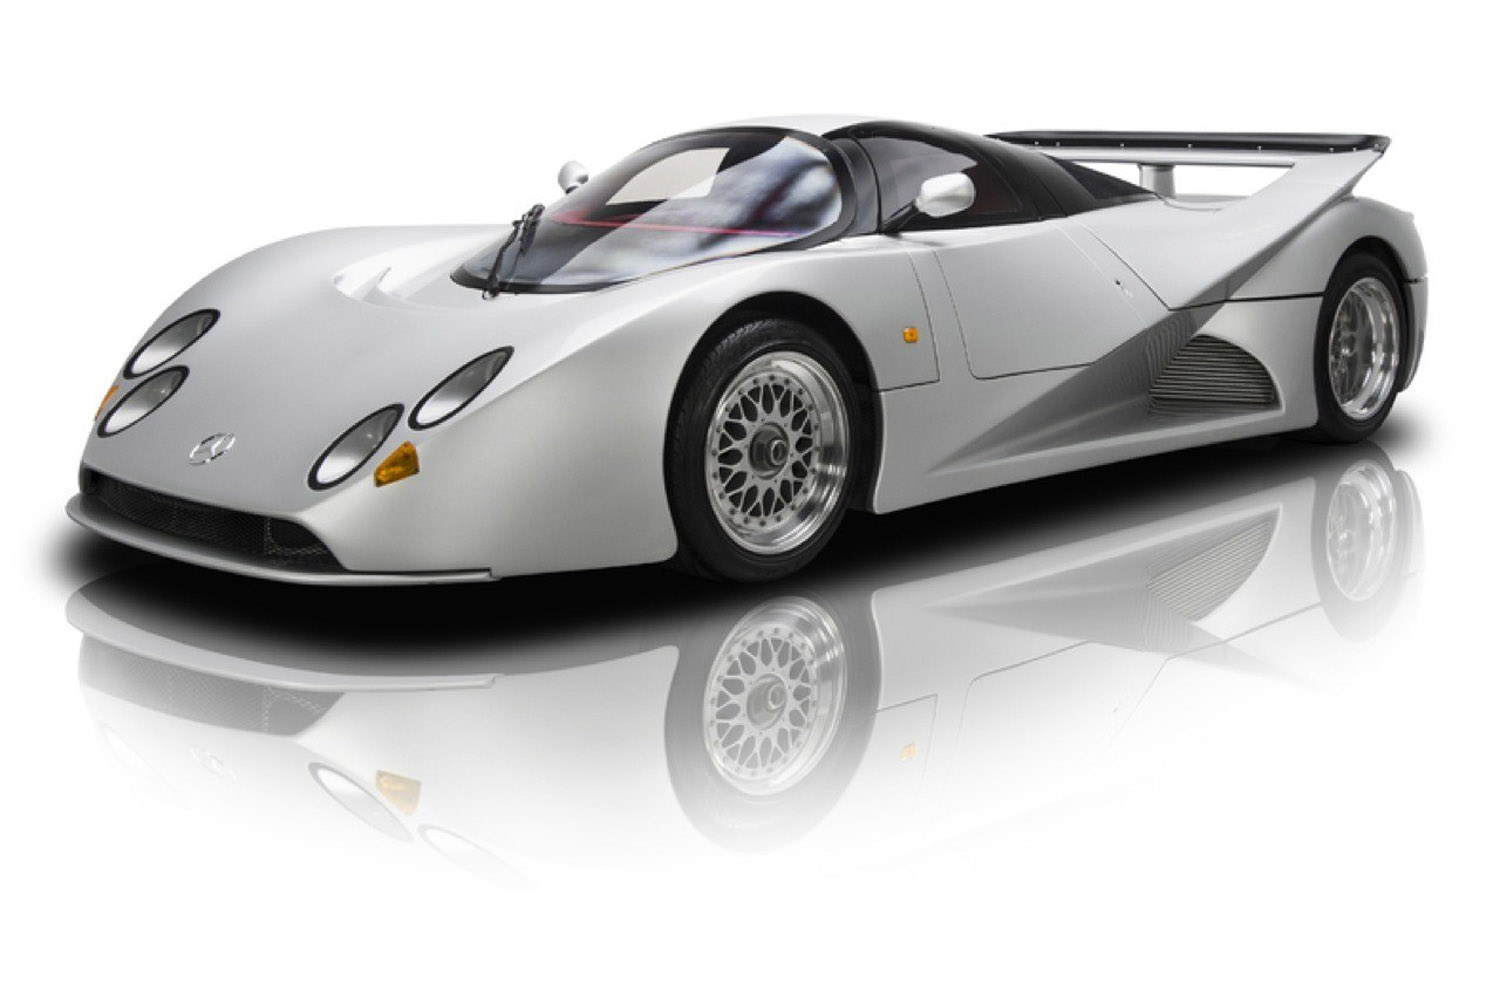 The World's Most Exclusive Mercedes Supercar is for Sale